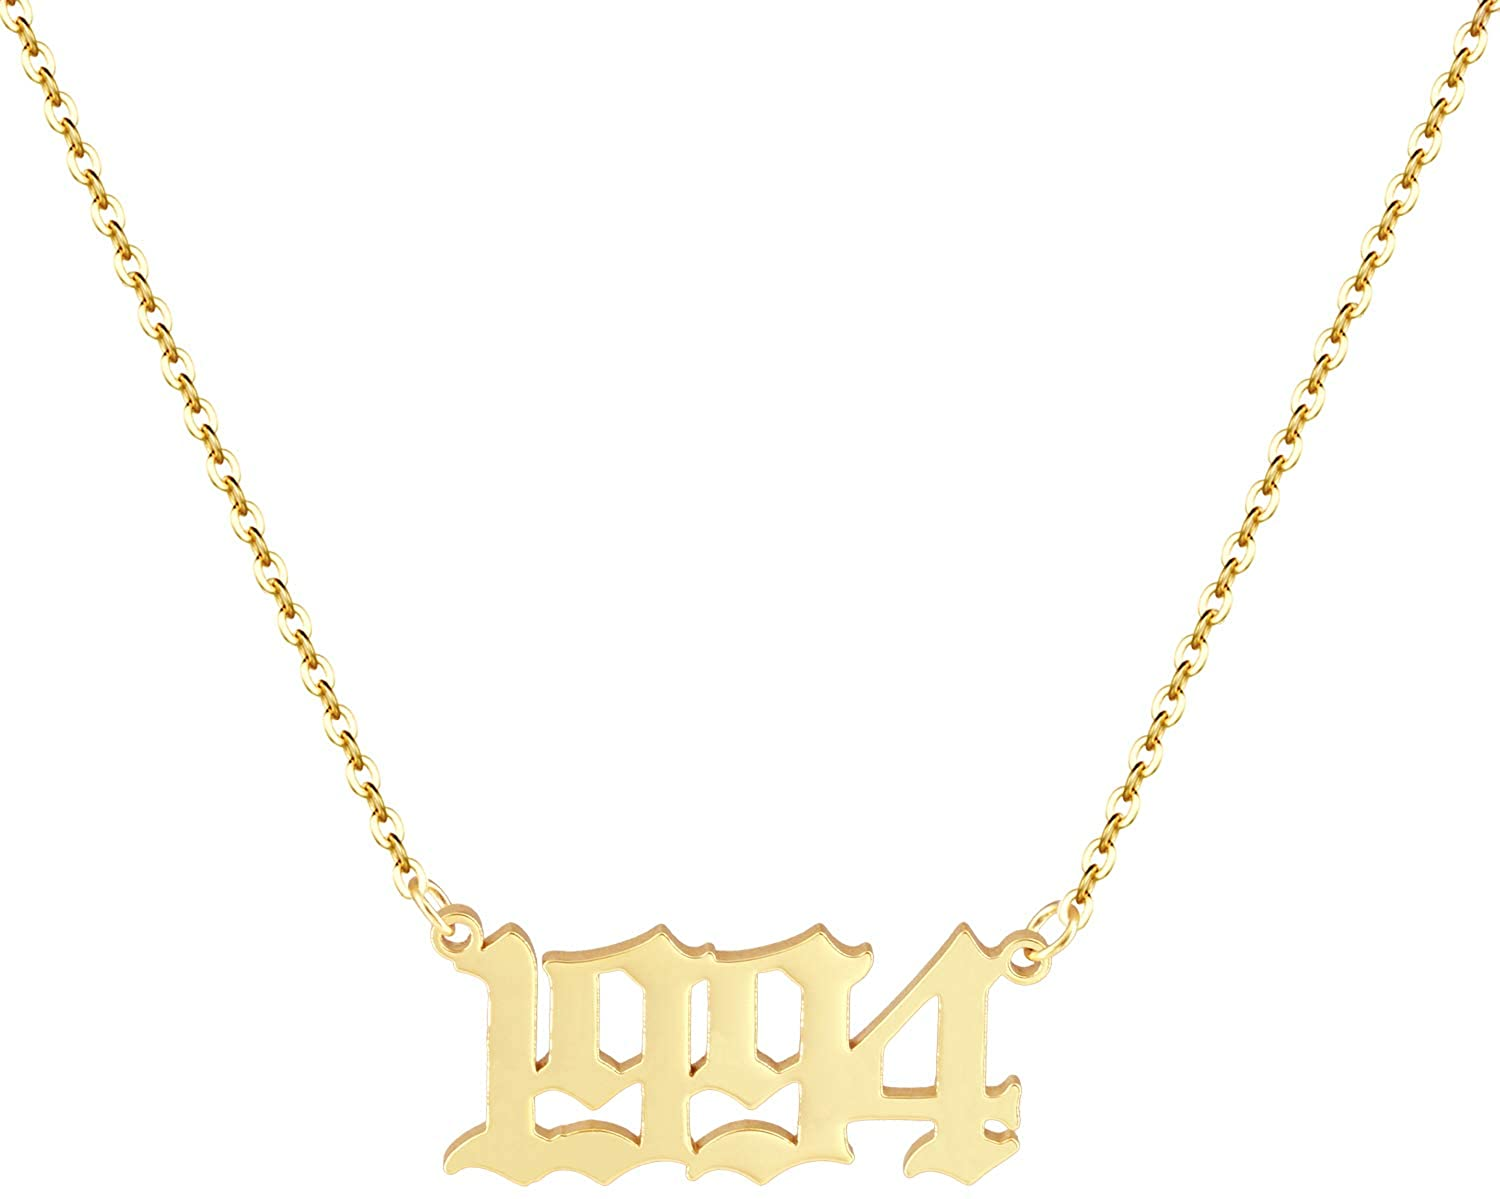 Aimber Birth Year Number Necklace 1980-2020 Initial Year Number Pendant Necklace Birthday Gift for Women and Girl Old English Arabic Number Stainless Steel Friendship Necklace